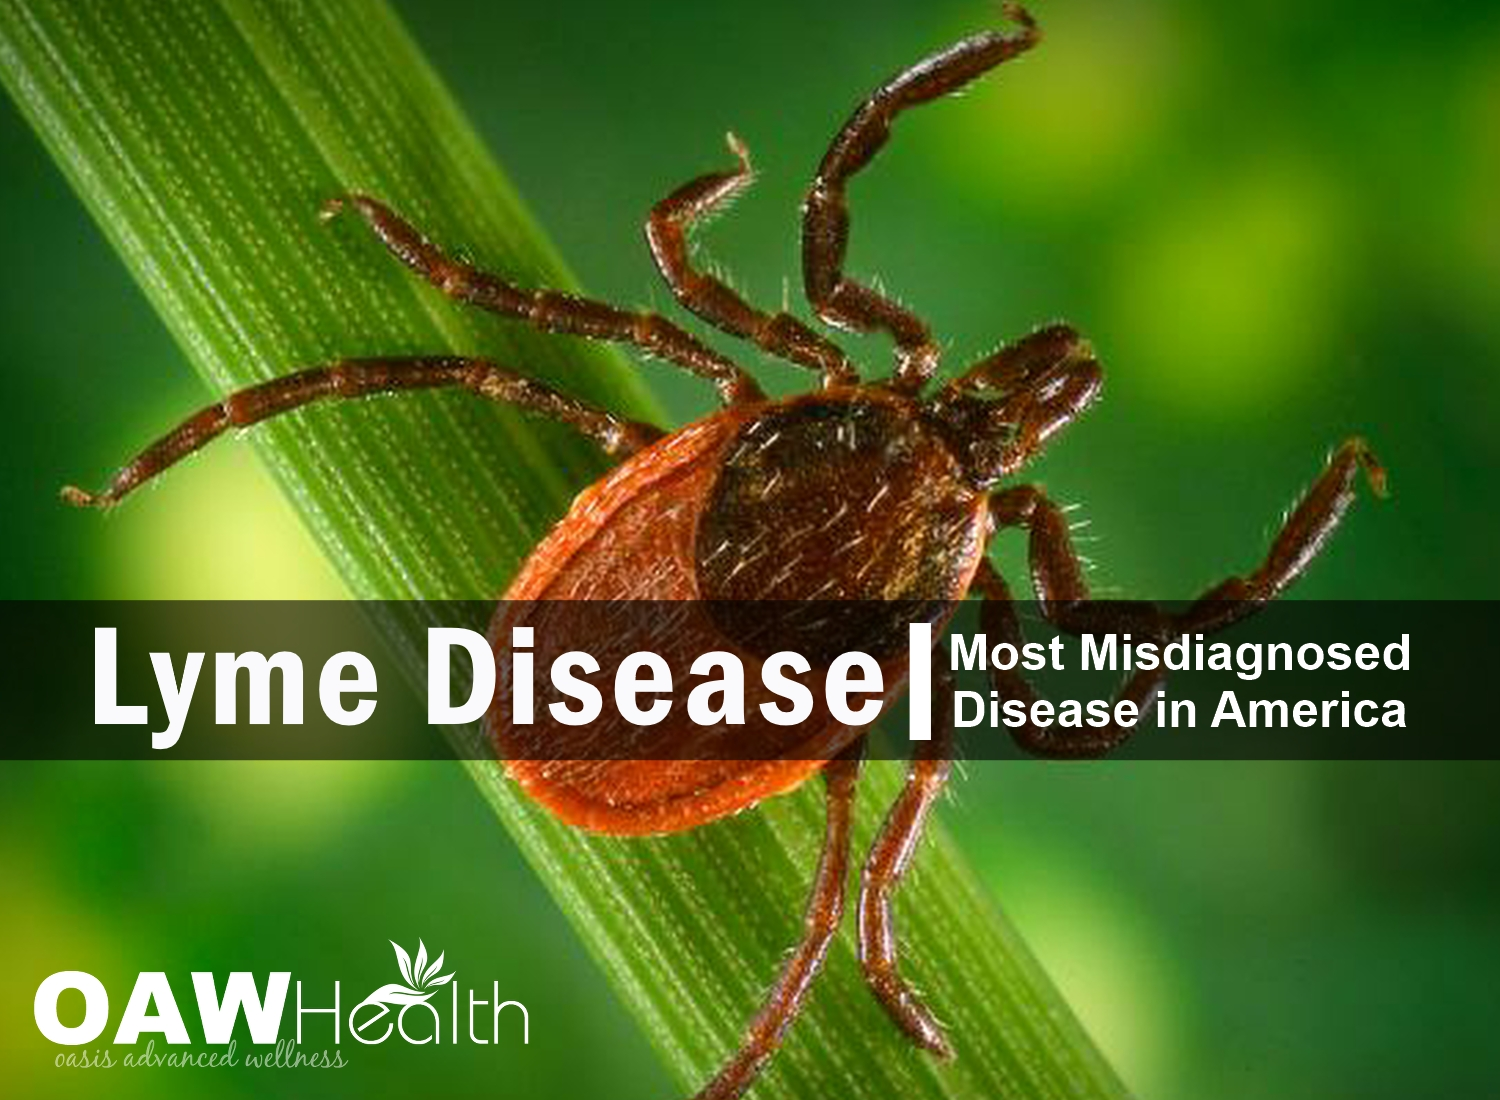 Lyme Disease – The Most Misdiagnosed Disease in America